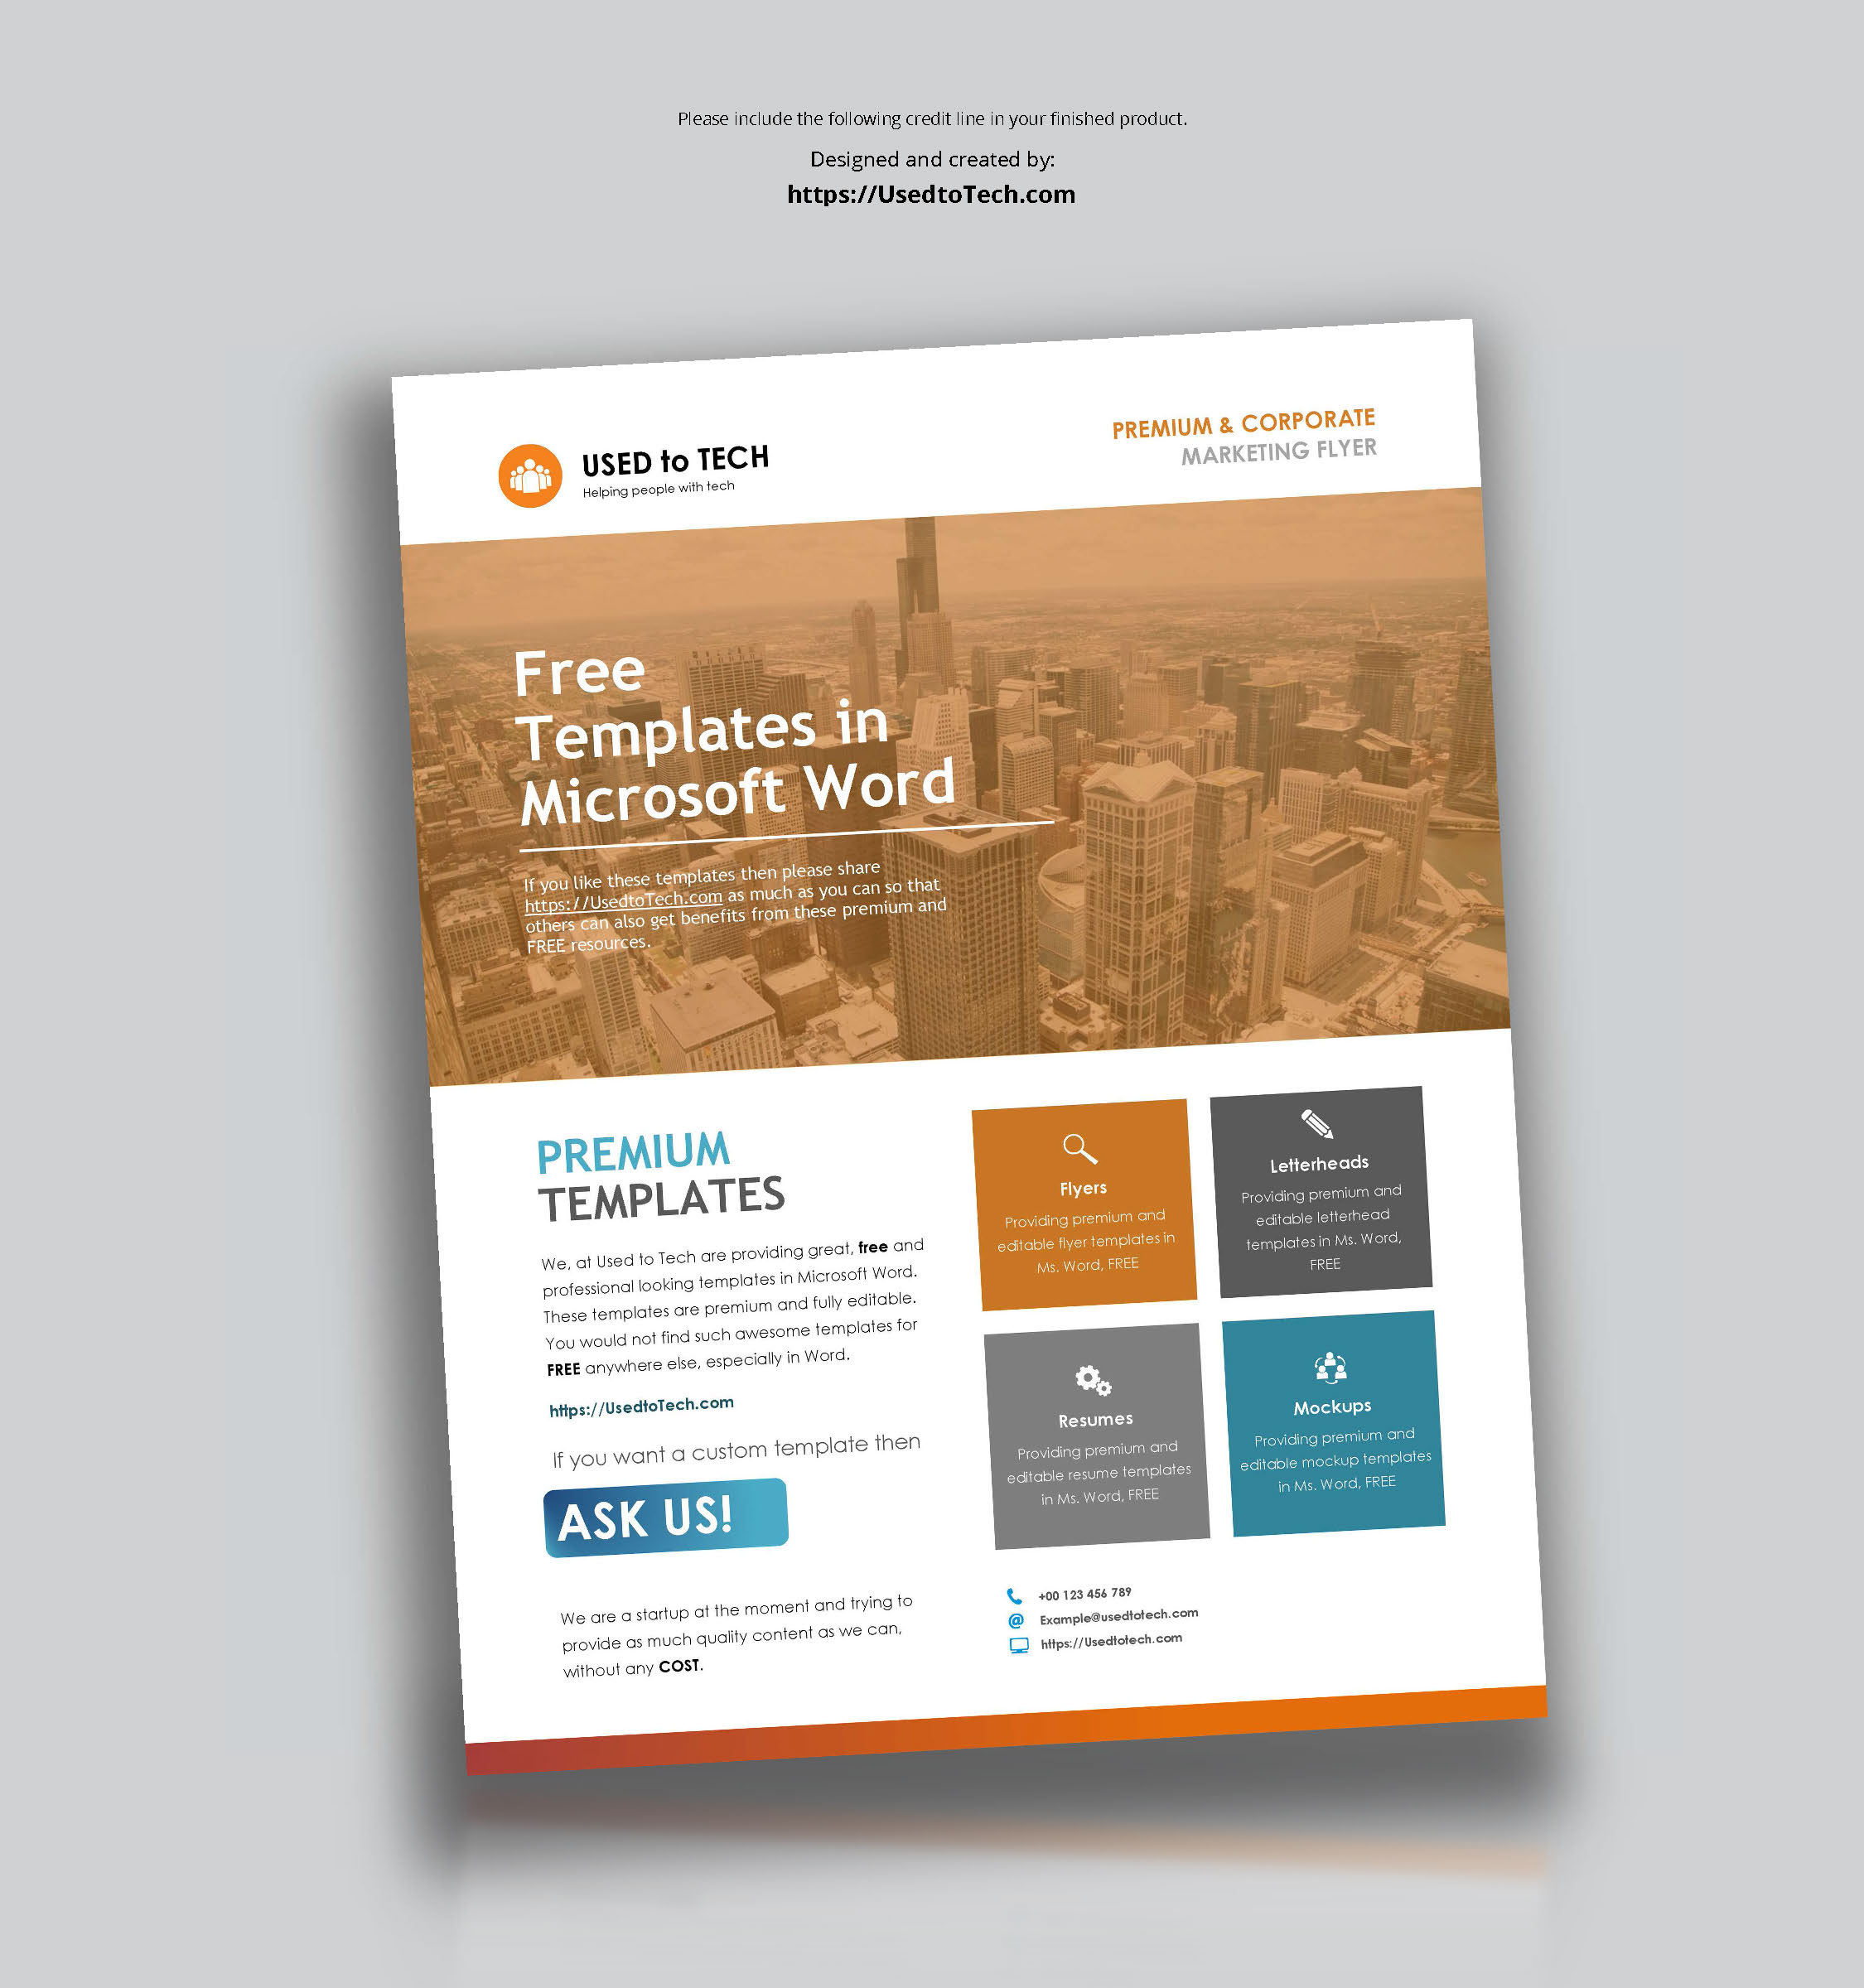 Corporate Flyer Design In Microsoft Word Free - Used To Tech For Templates For Flyers In Word